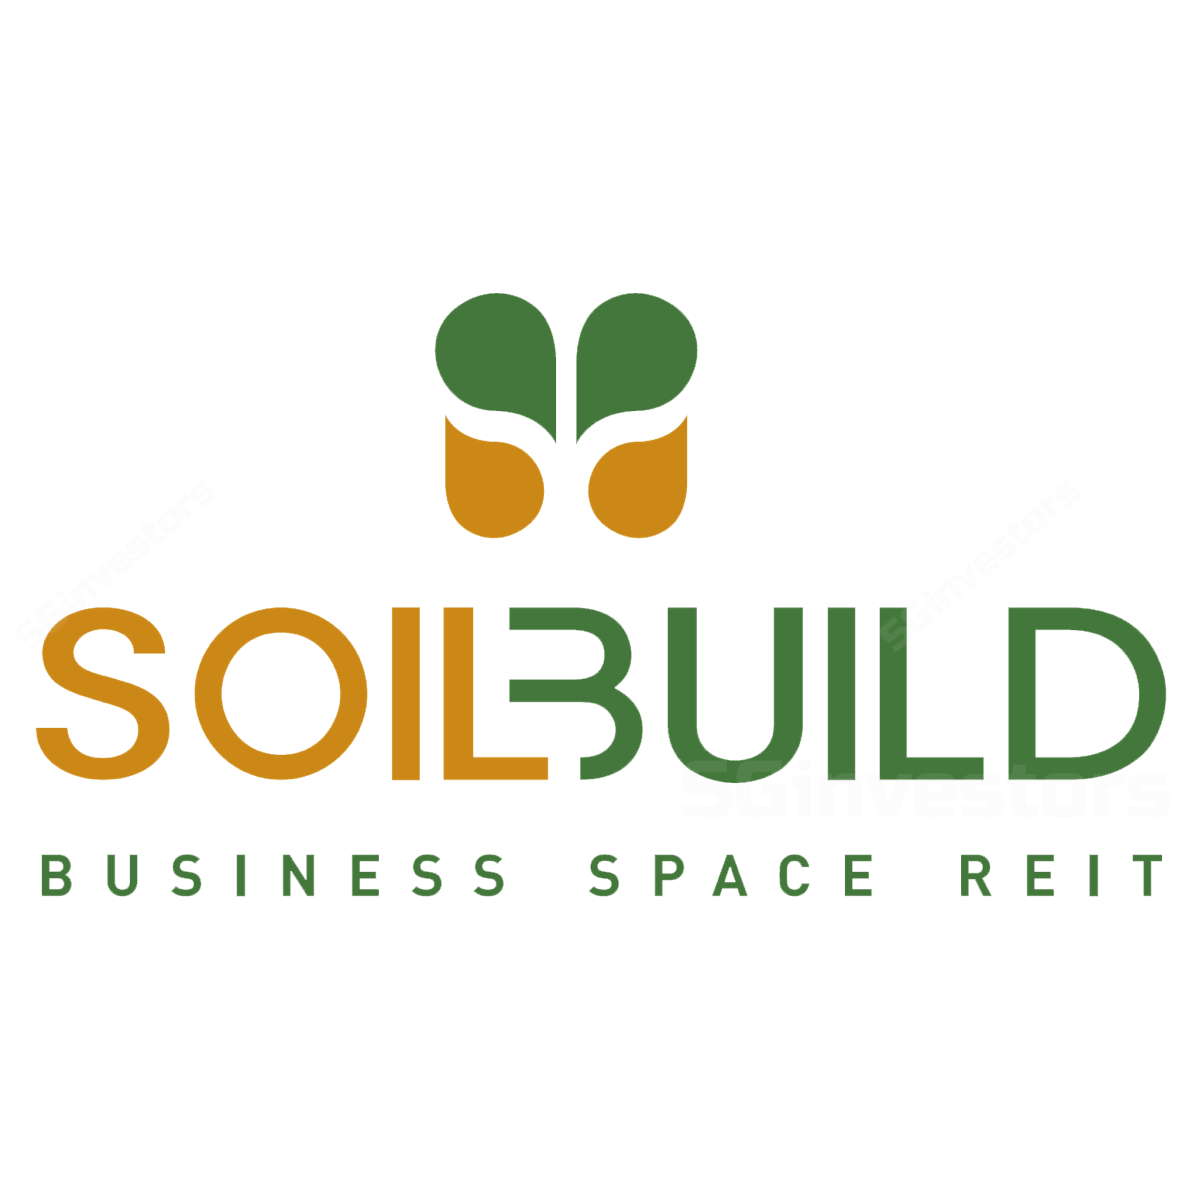 Soilbuild Business Space REIT - Phillip Securities 2017-01-25: Tough year ahead